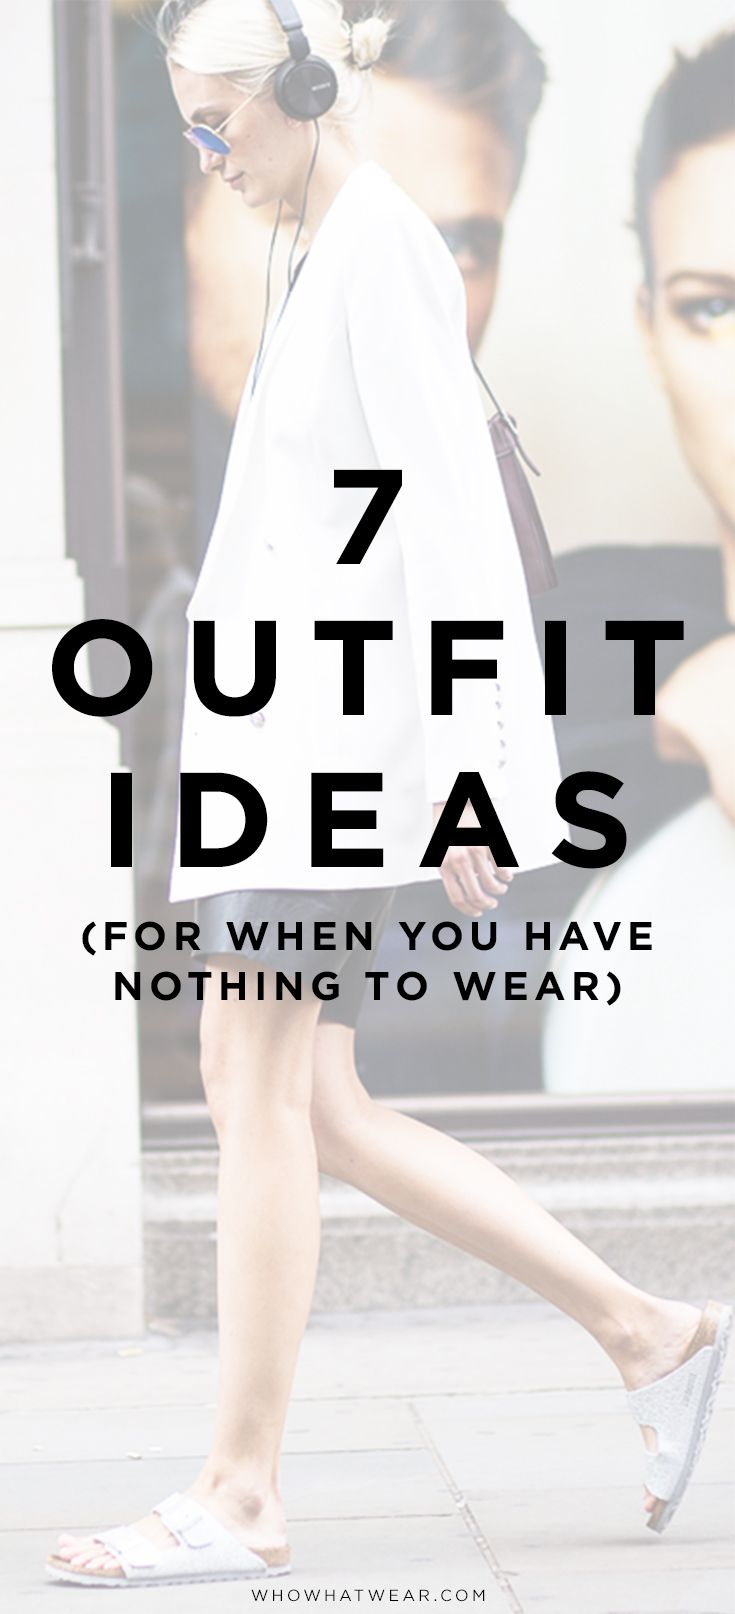 7 outfit ideas for when you have nothing to wear